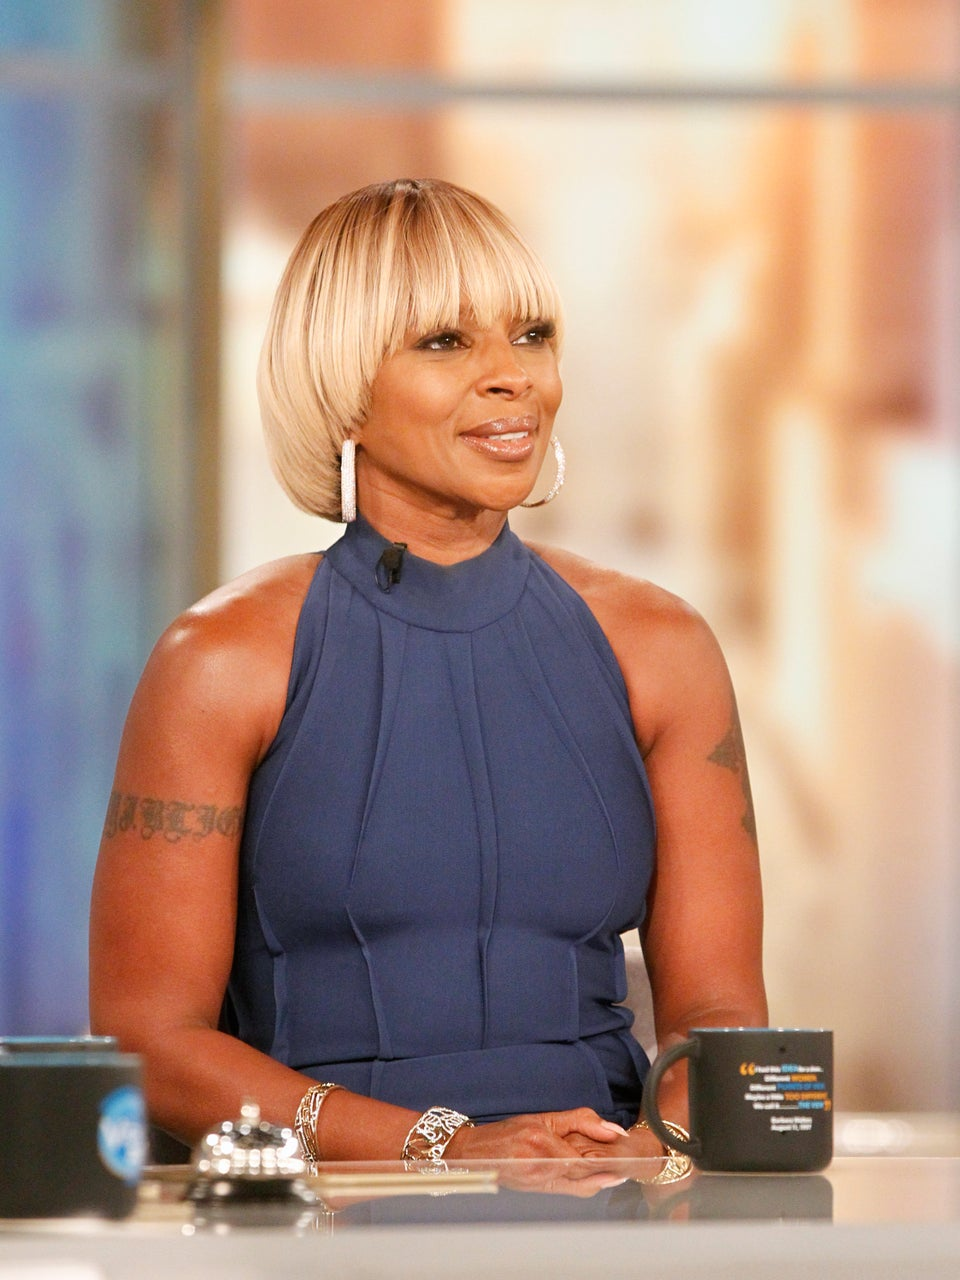 Mary J. Blige on Divorce from Kendu Isaacs: 'I Have to Move on and Save Myself'